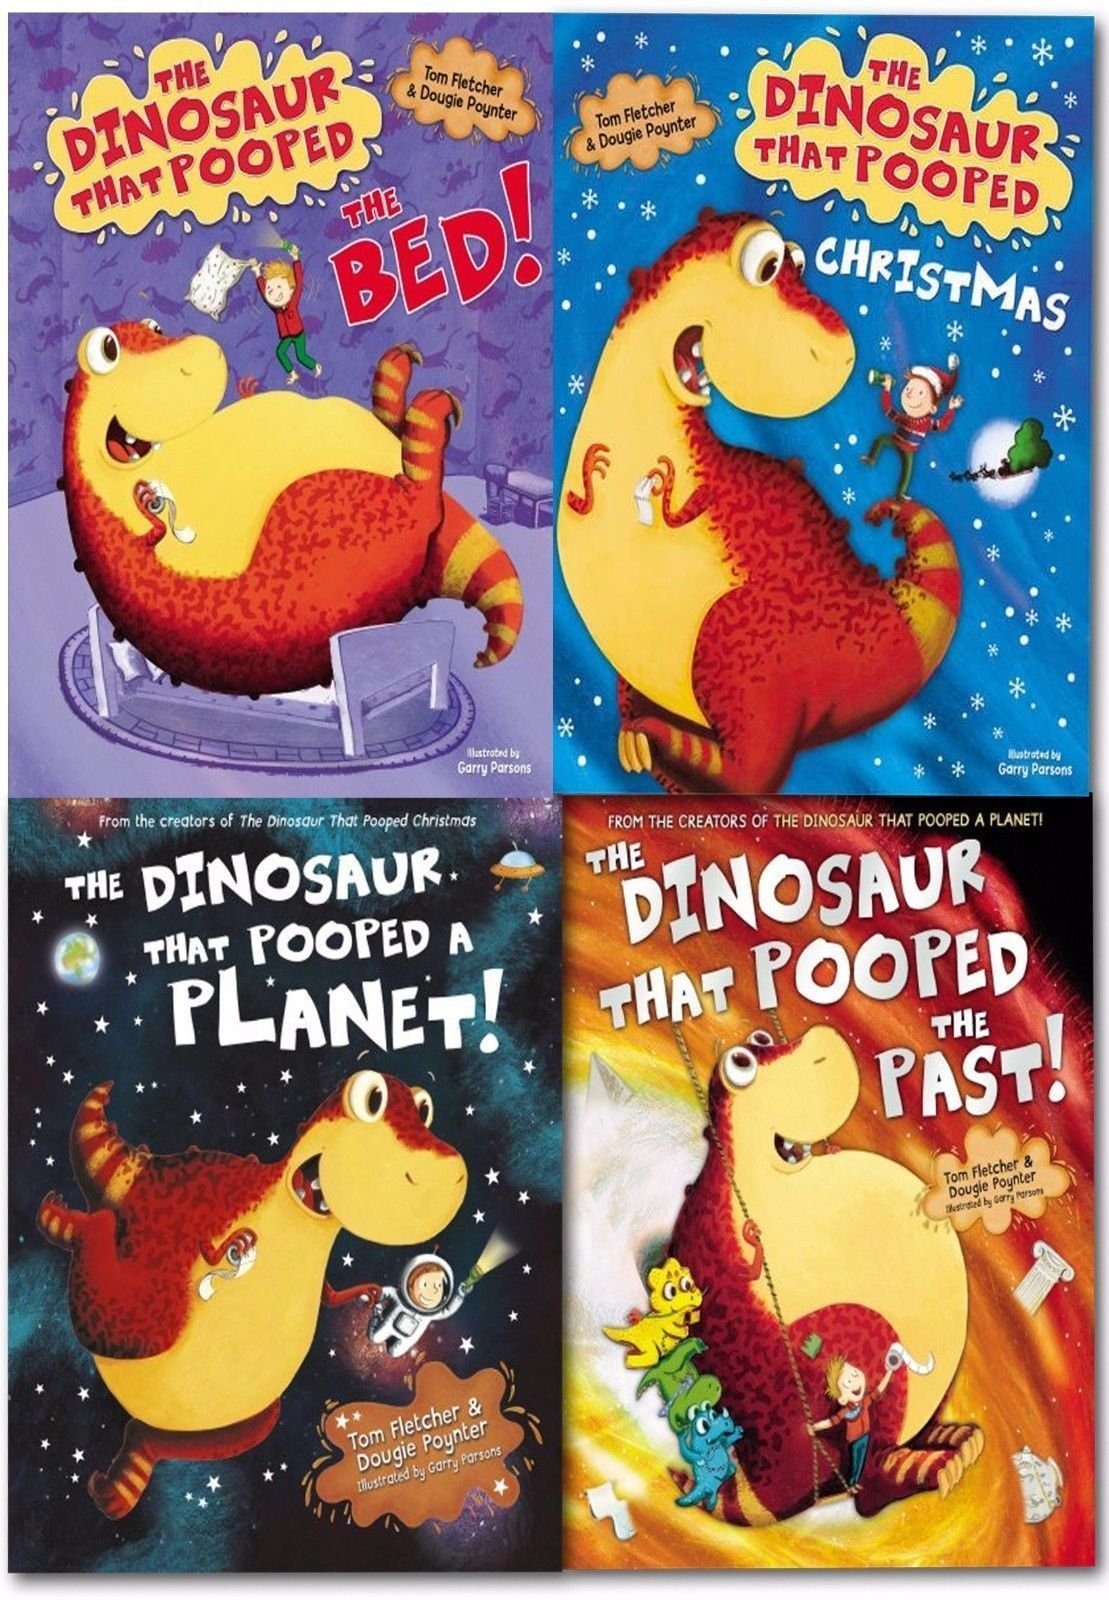 The Dinosaurs That Pooped Collection 4 Books Pack Set The Dinosaur That Pooped A Lot!, The Dinosaur That Pooped The Past, The Dinosaur That Pooped Christmas, The Dinosaur That Pooped A Planet: